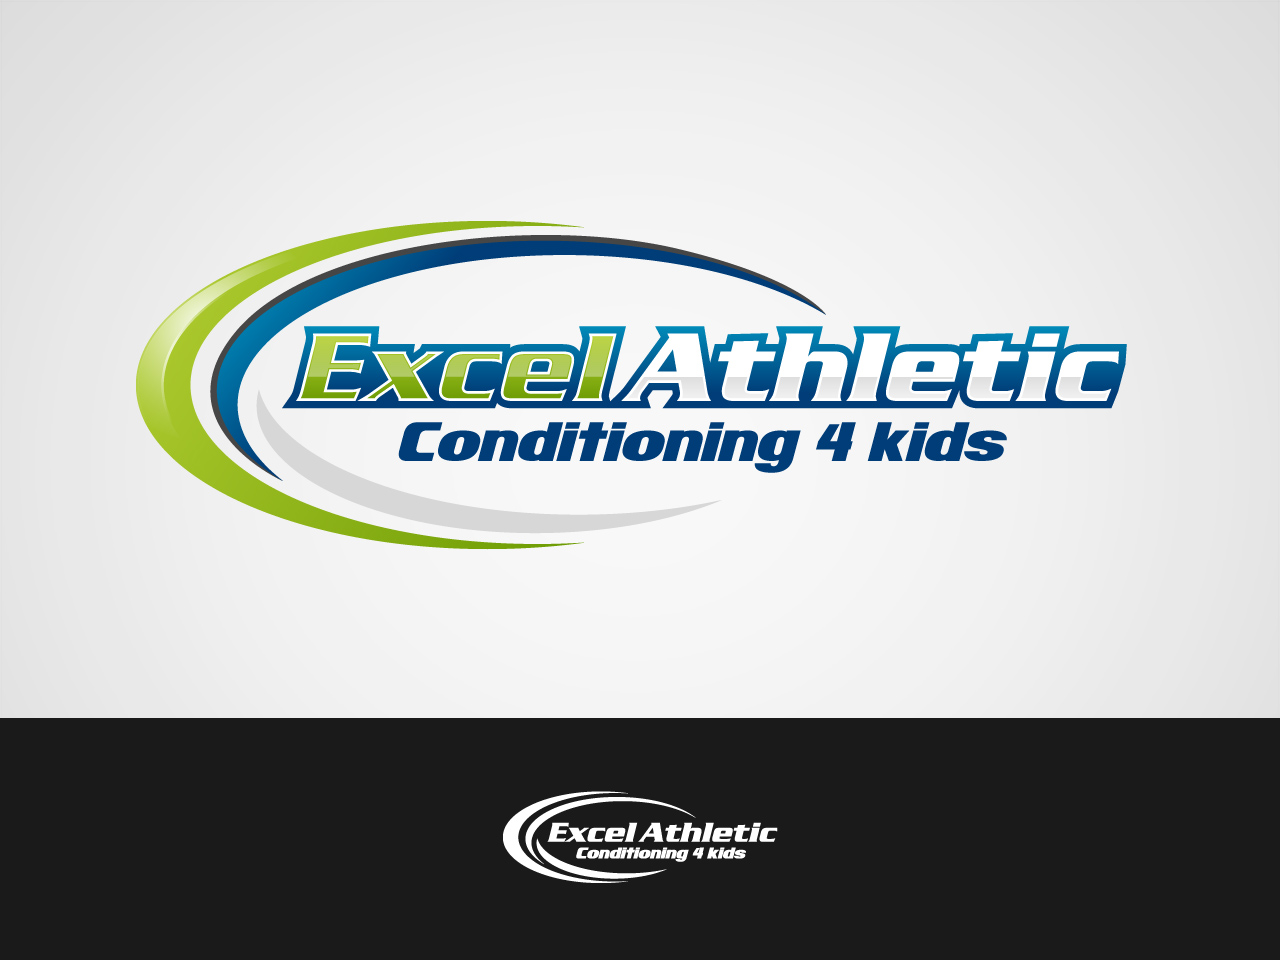 Logo Design by jpbituin - Entry No. 20 in the Logo Design Contest Artistic Logo Design for Excel Athletic Conditioning 4 kids.